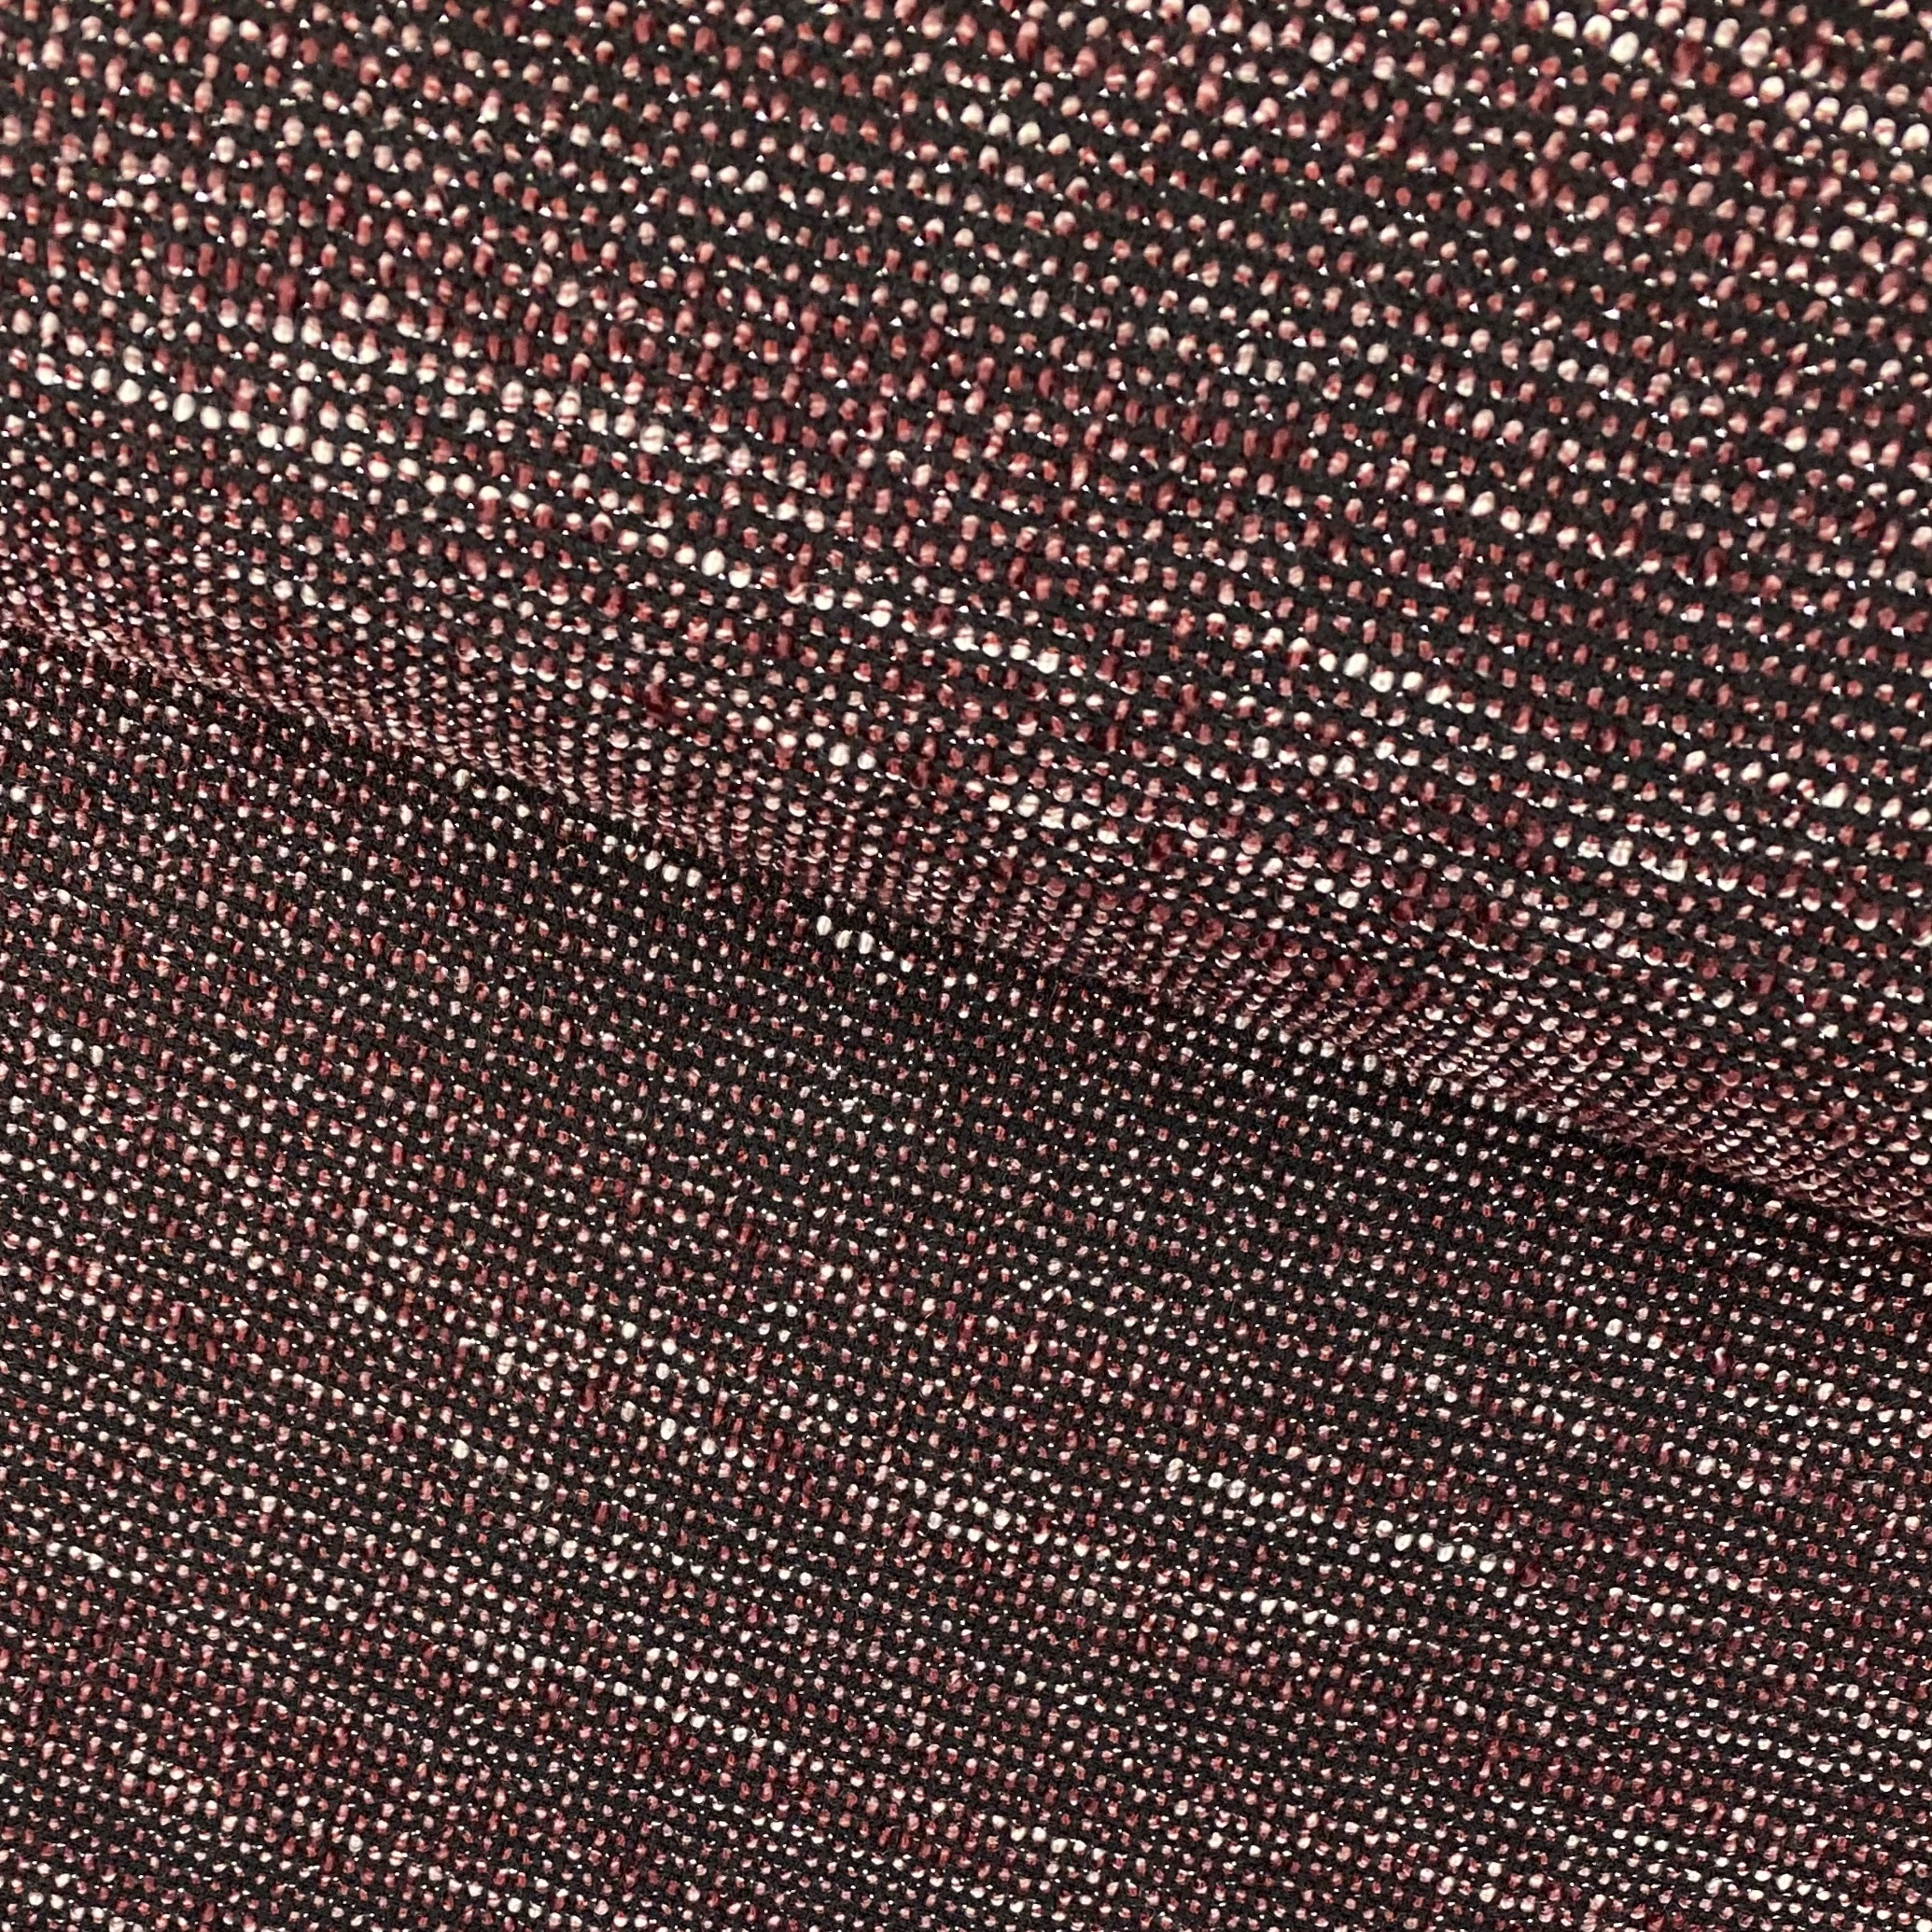 Bouclé Stoff Tweed, bordeauxrot/schwarz. Art. SW11201